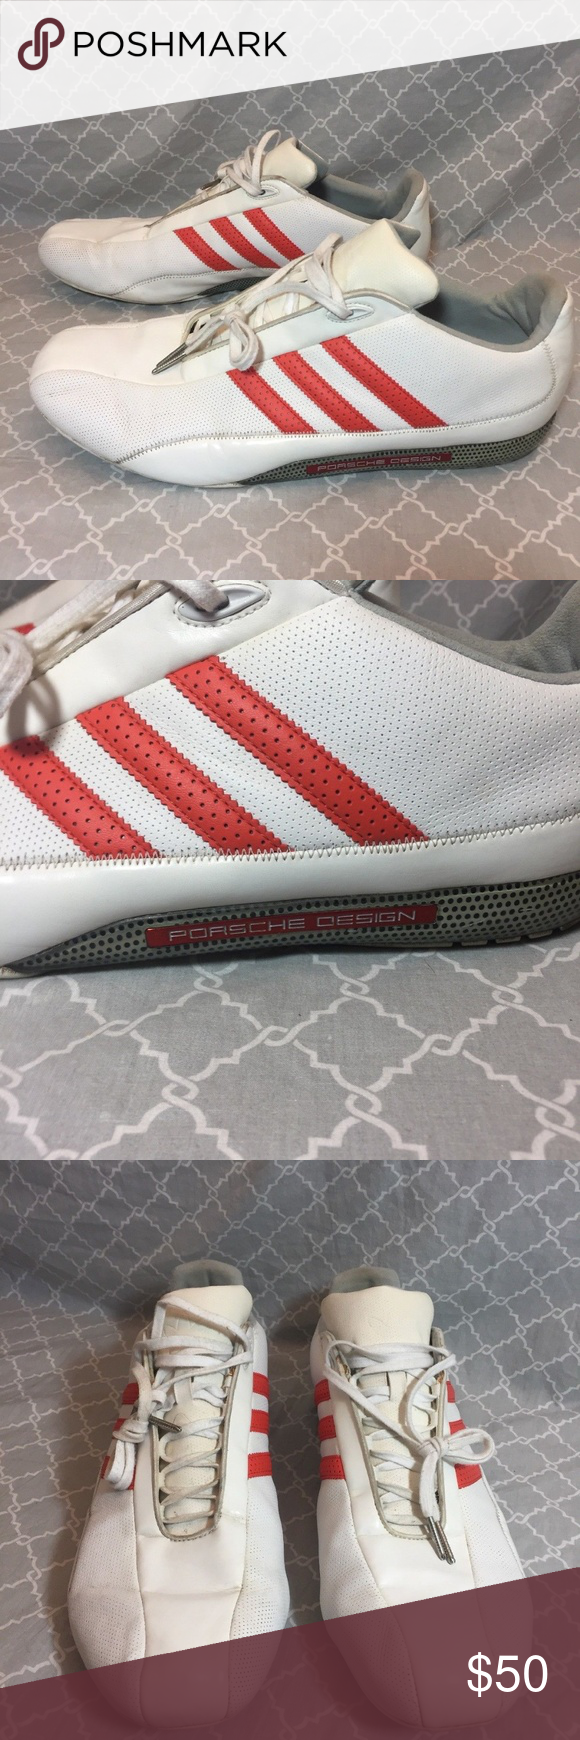 fc8922c4e Adidas Porsche Design S2 Men s Size 13 Adidas Porsche Design Driving  Sneakers. Size 13. White and Orange. In Good Condition. Some Marks From  Wear But In ...